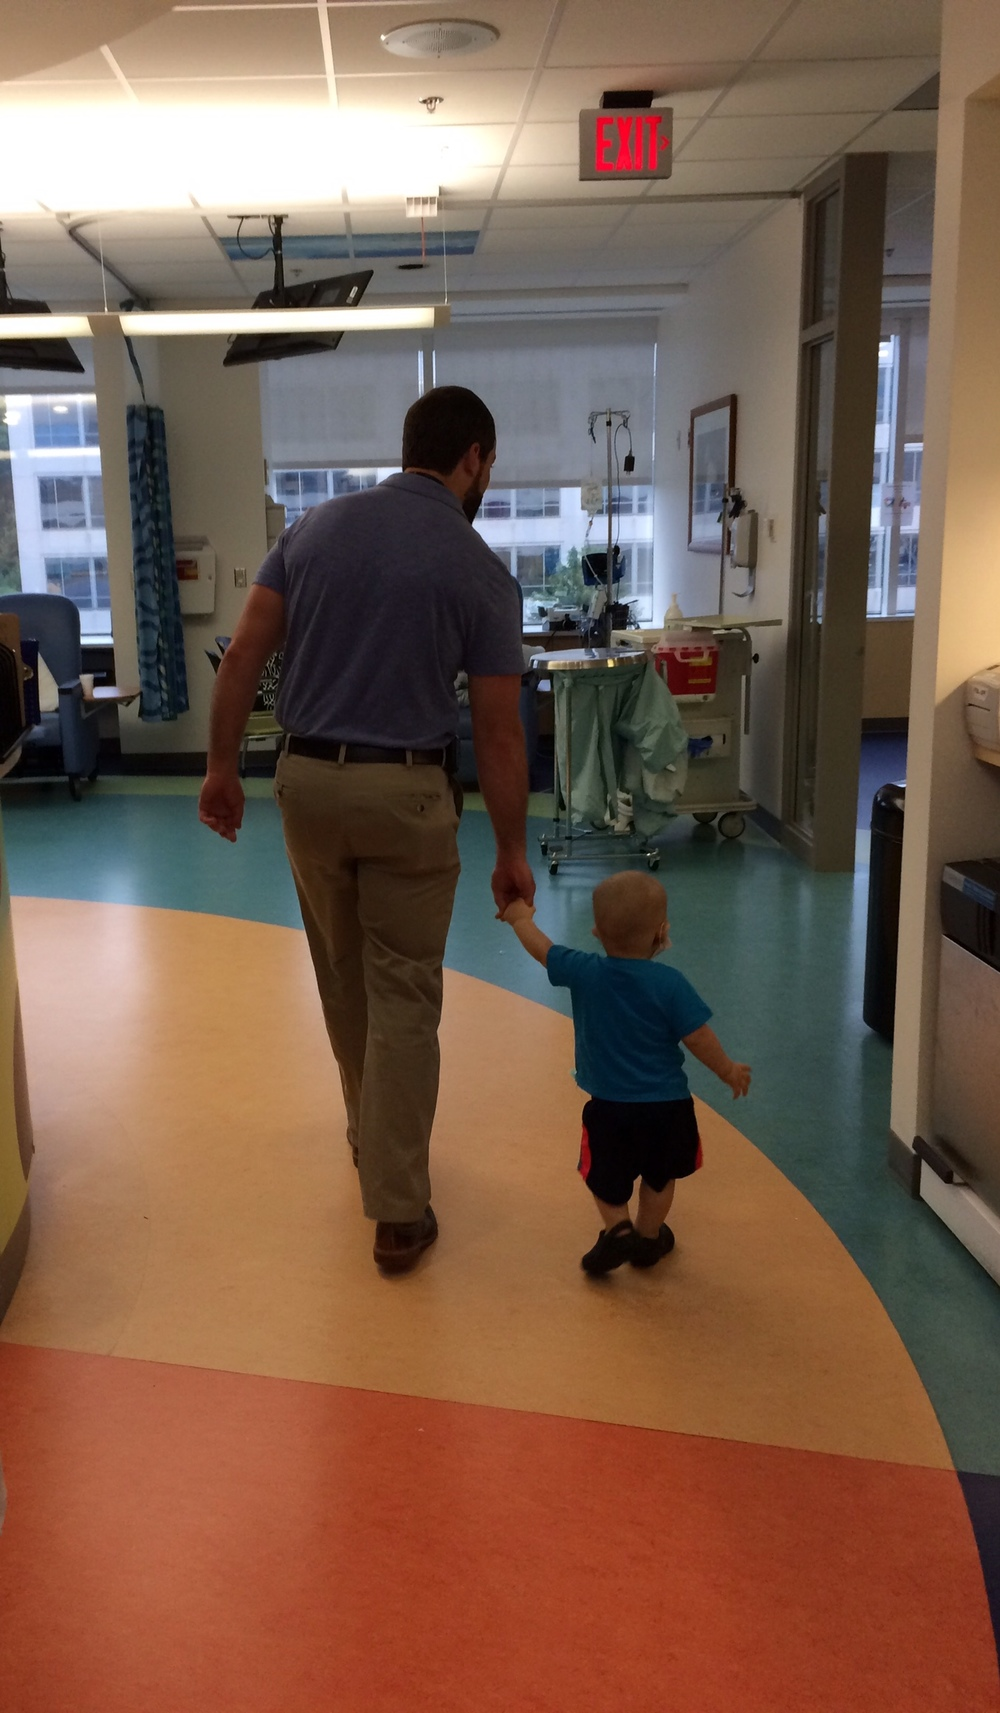 Holding hands with his primary Immunologist/BMT doctor, all along the way